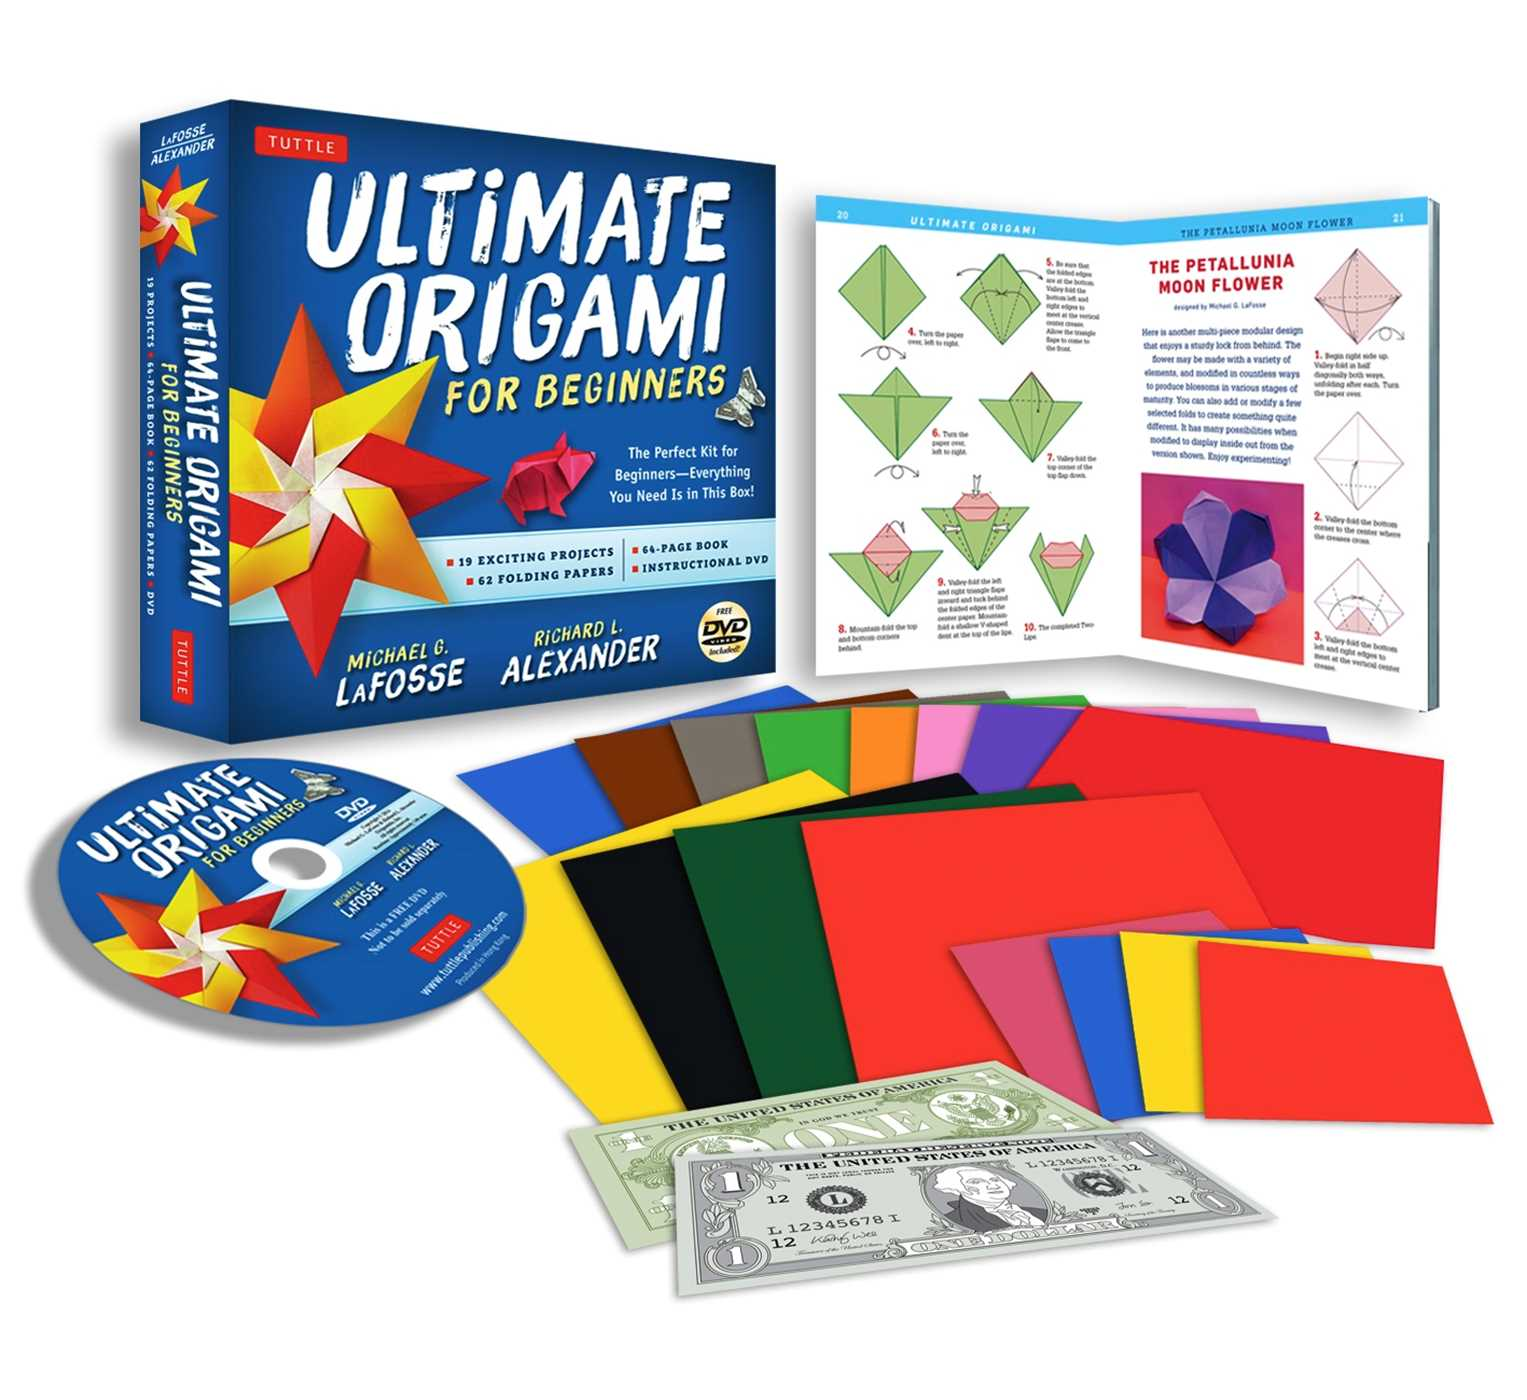 Ultimate-origami-for-beginners-kit-9784805312674_hr